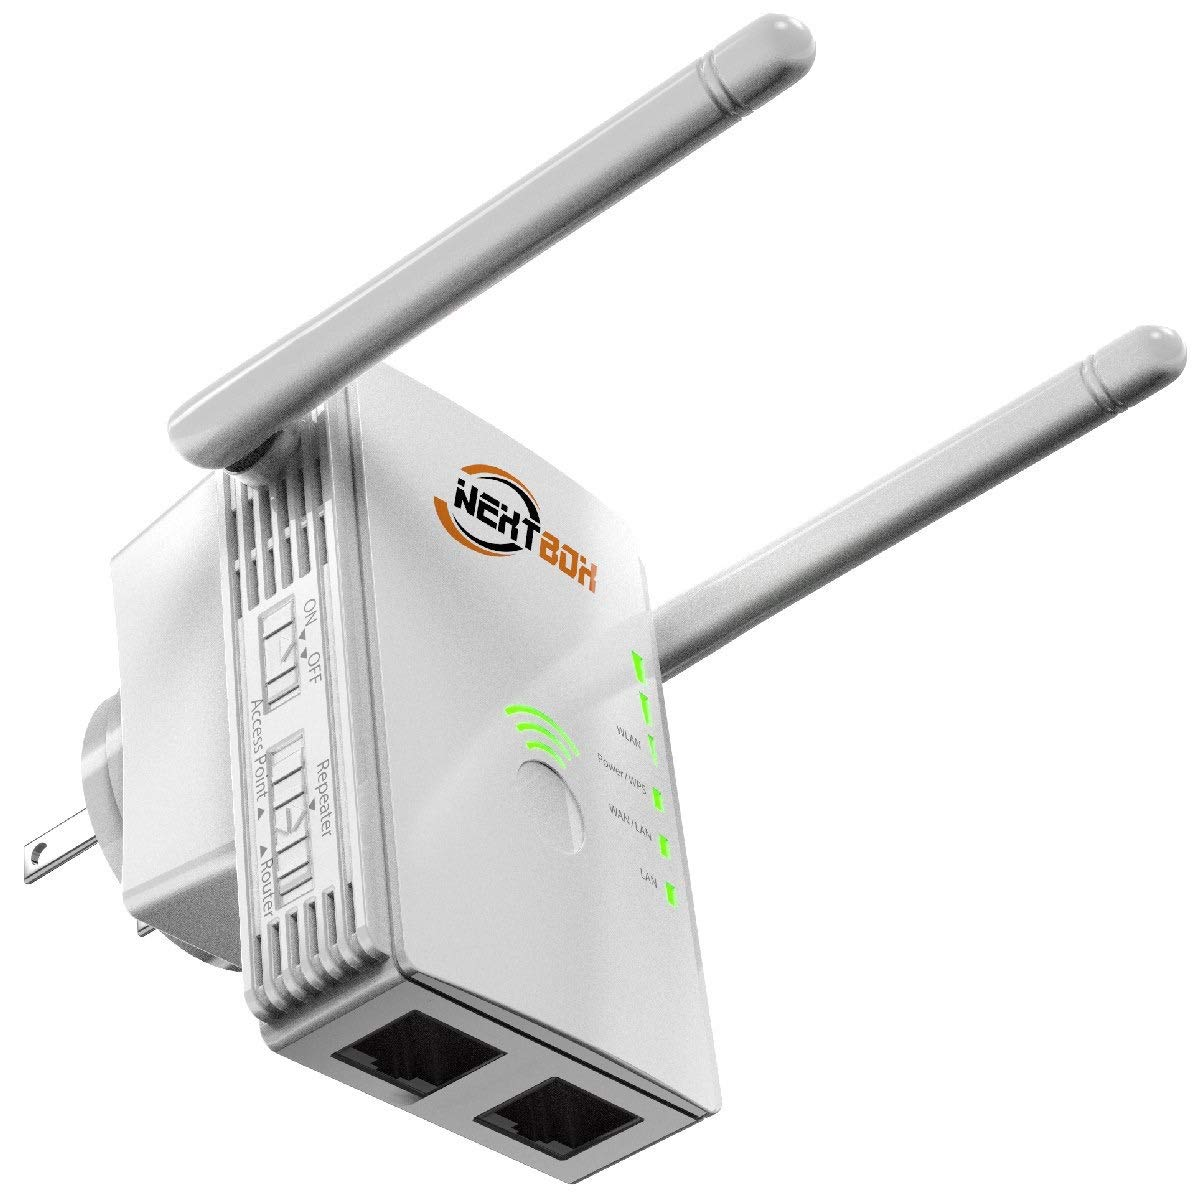 Extends WiFi Coverage to Smart Home Devices WiFi Extender 300 Mbps with WPS Internet Signal Booster Upgraded 2020 Wireless Repeater 2.4GHz Band to 300 Mbps Range Network Compatible with Alexa